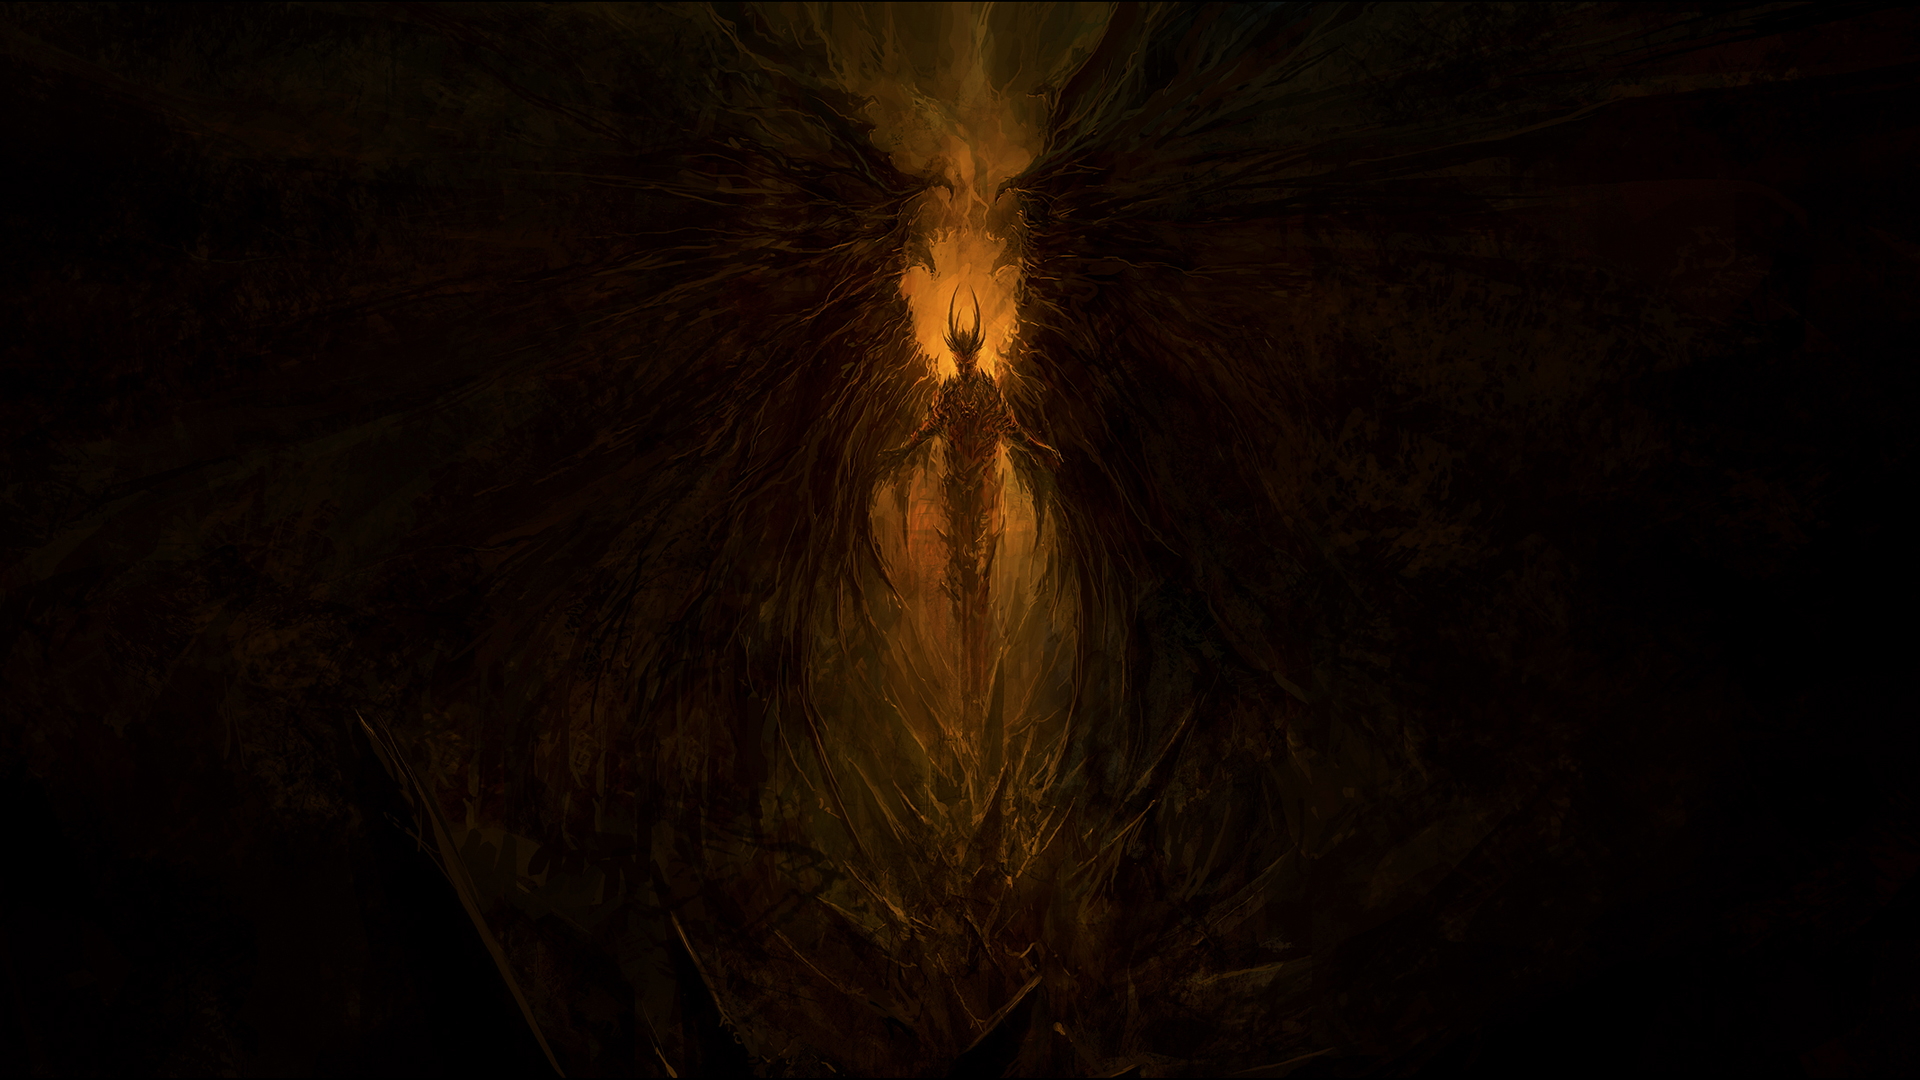 3 Devil HD Wallpapers | Backgrounds - Wallpaper Abyss